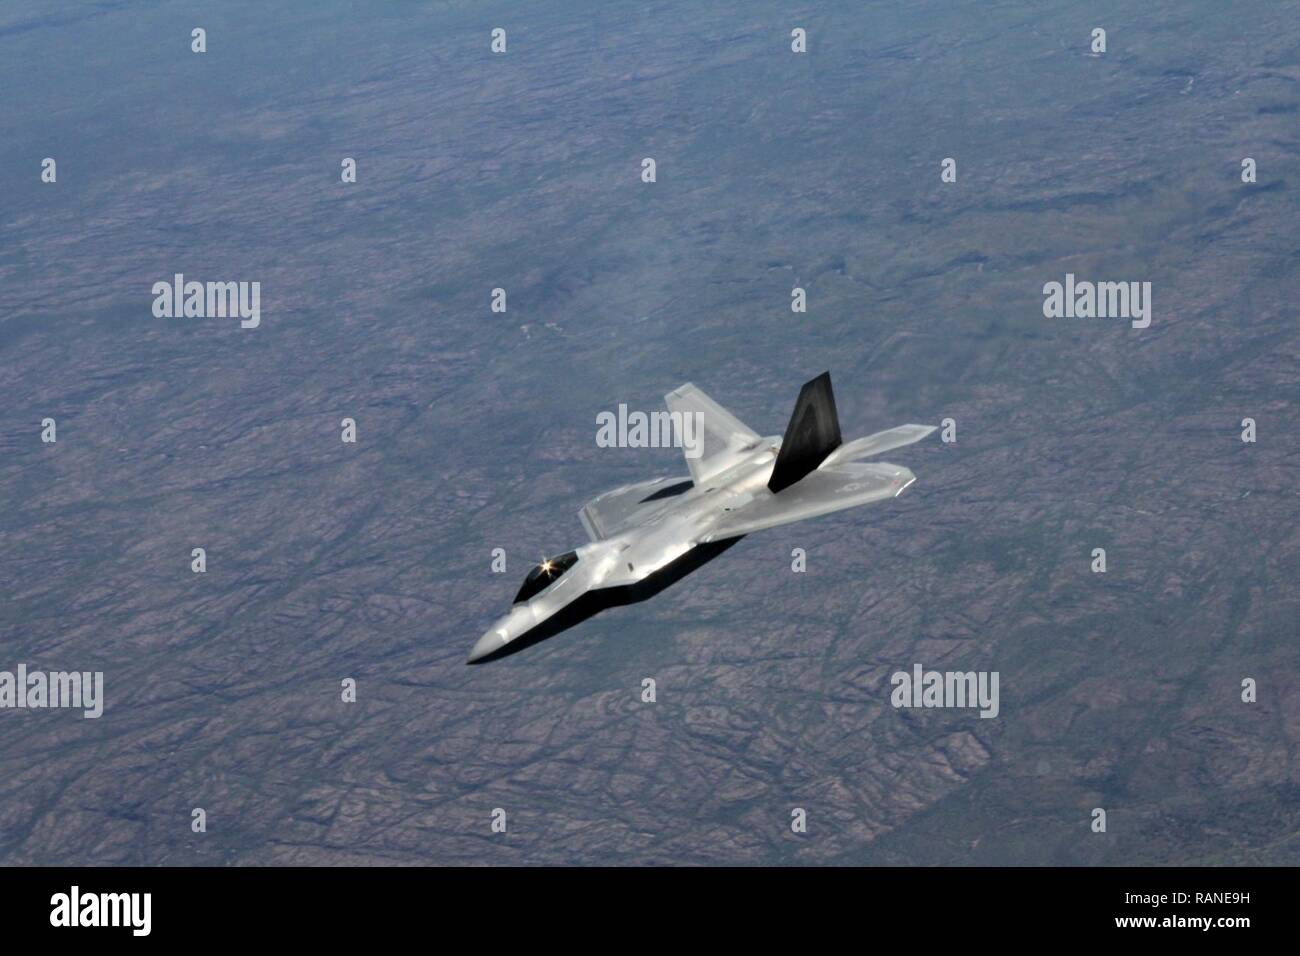 A U.S. Air Force F-22 Raptor flies above Royal Australian Air Force Base Tindal, Australia, March 2, 2017. Twelve F-22 Raptors and approximately 200 U.S. Air Force Airmen participated in the first Enhanced Air Cooperation, an initiative under the Force Posture Agreement between the U.S. and Australia. - Stock Image